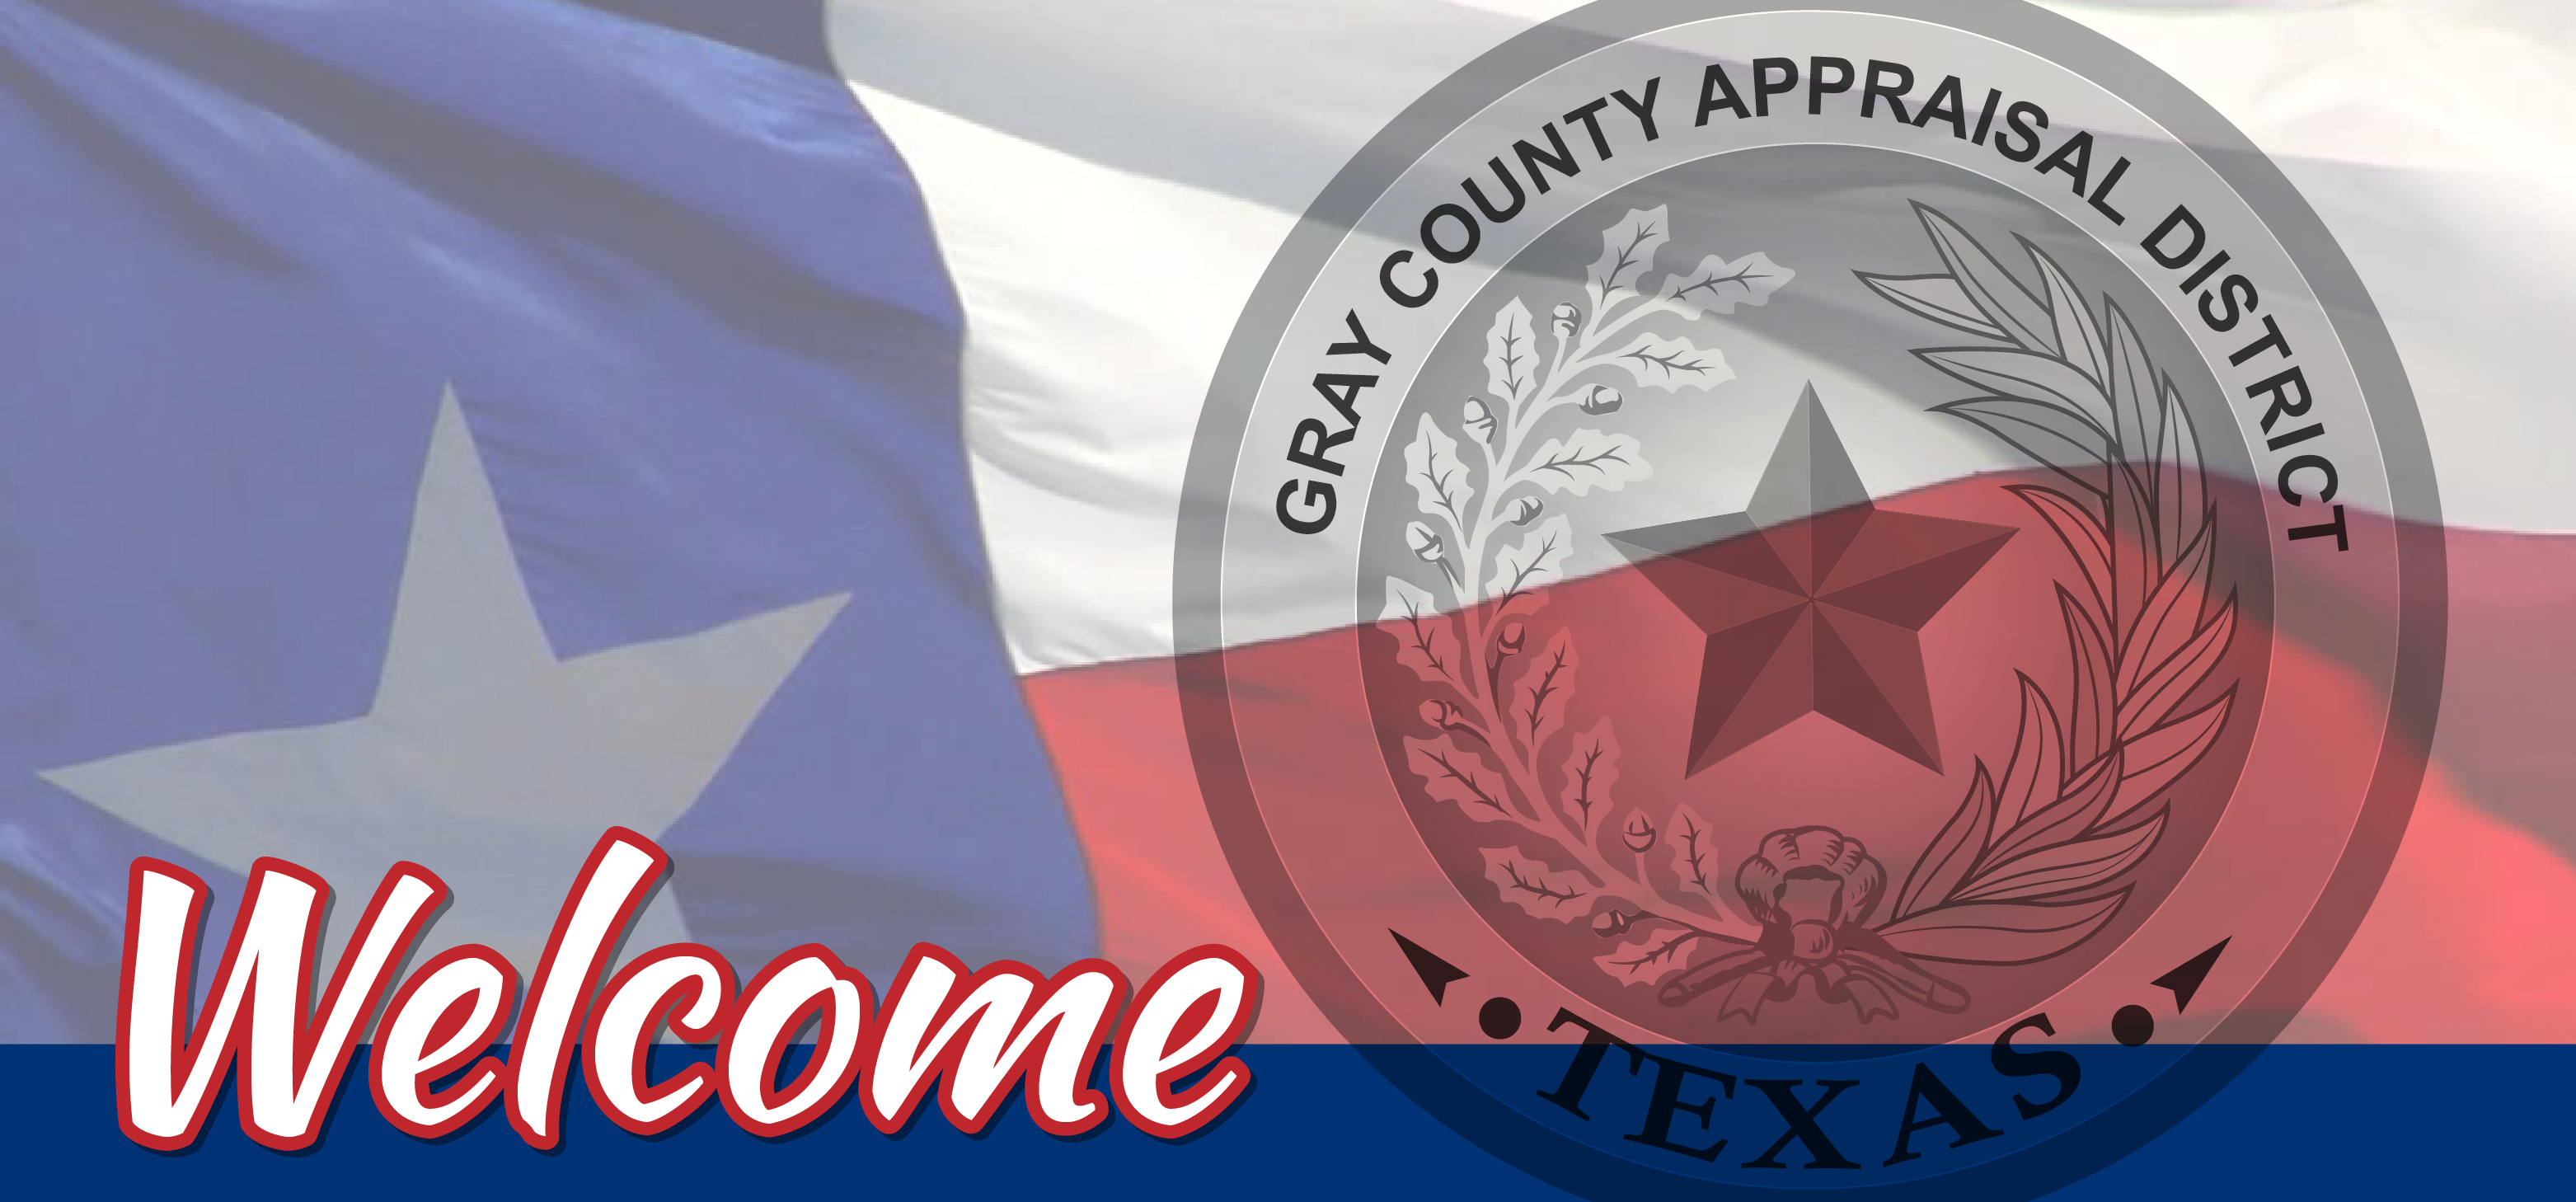 Welcome to Gray County Appraisal District